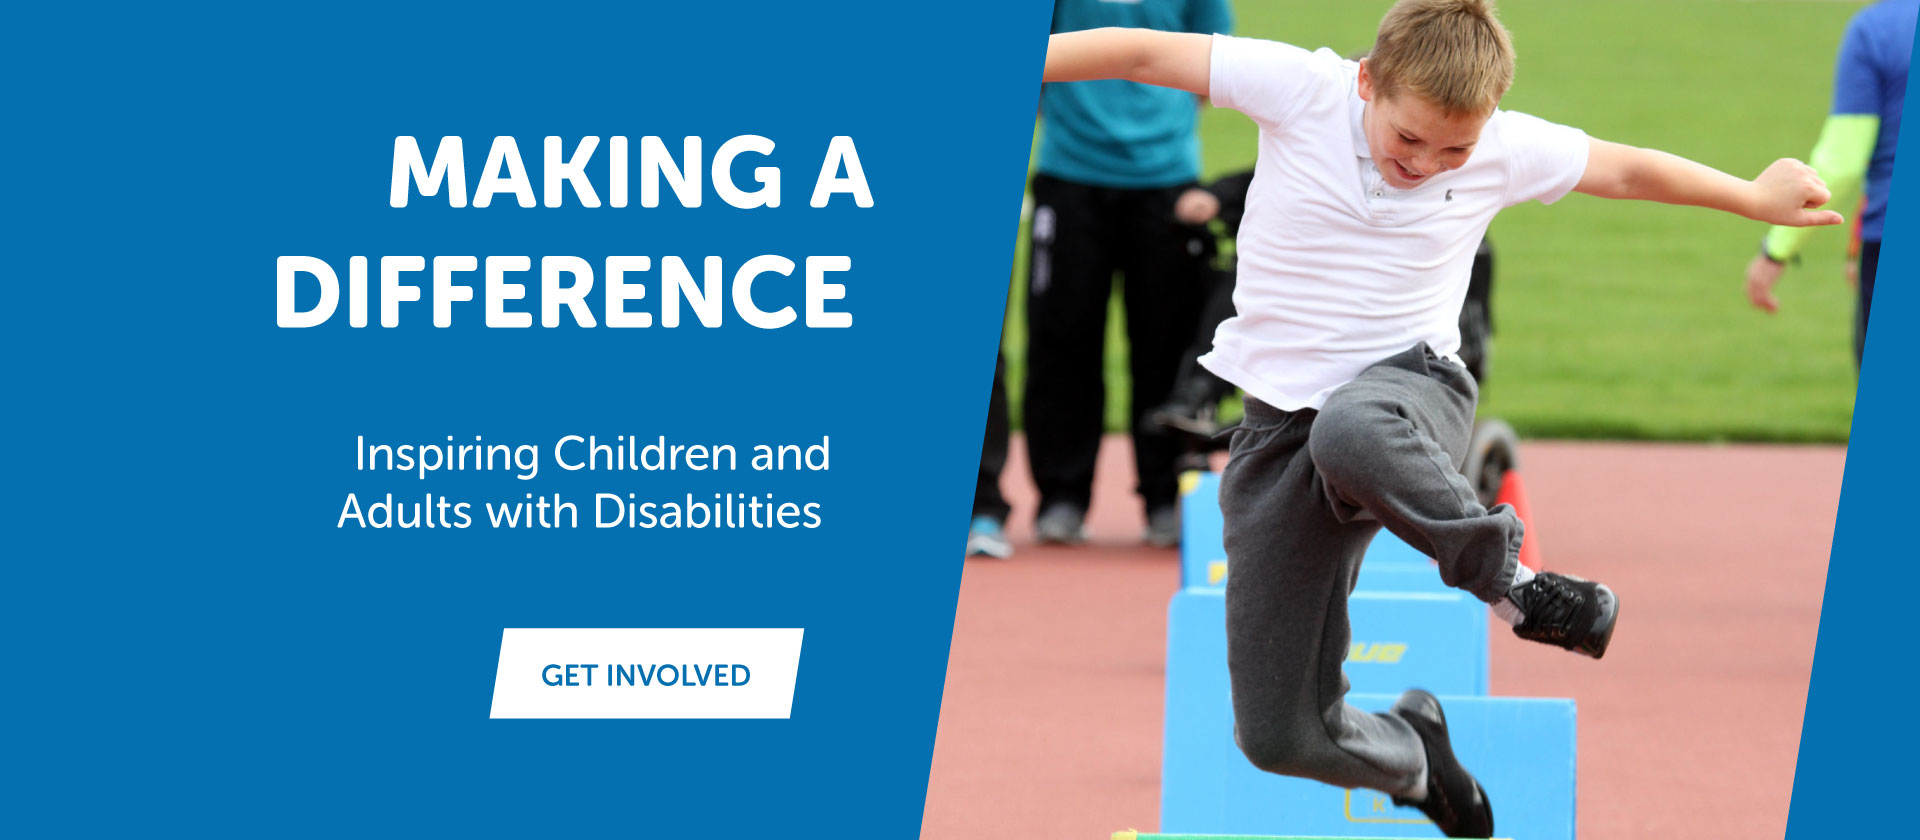 Inspiring Children and Adults with Disabilities